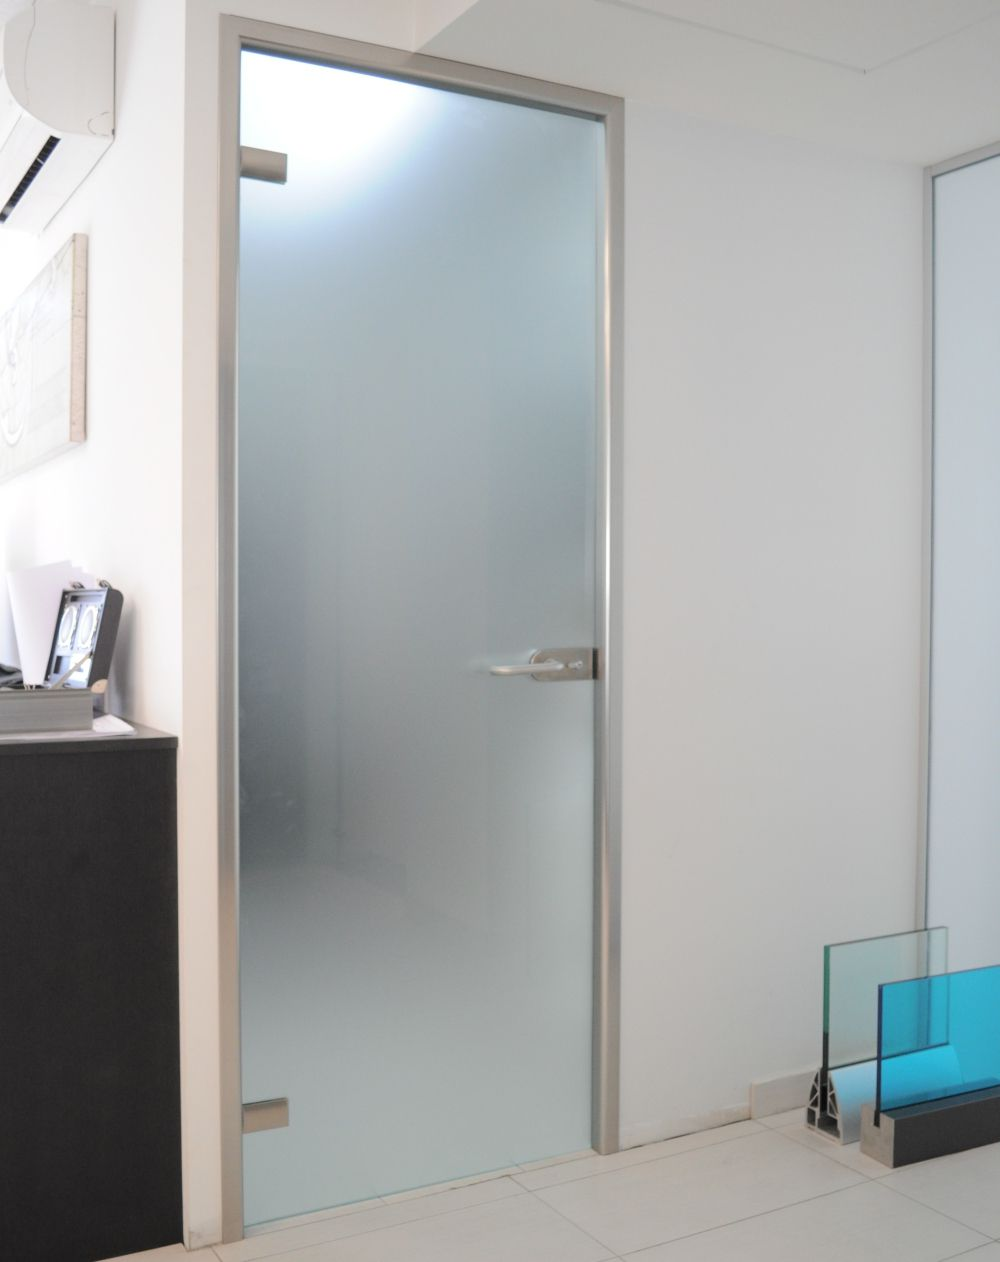 Fashionable interior doors with glass ... frosted glass interior doors ... pqnfrhq